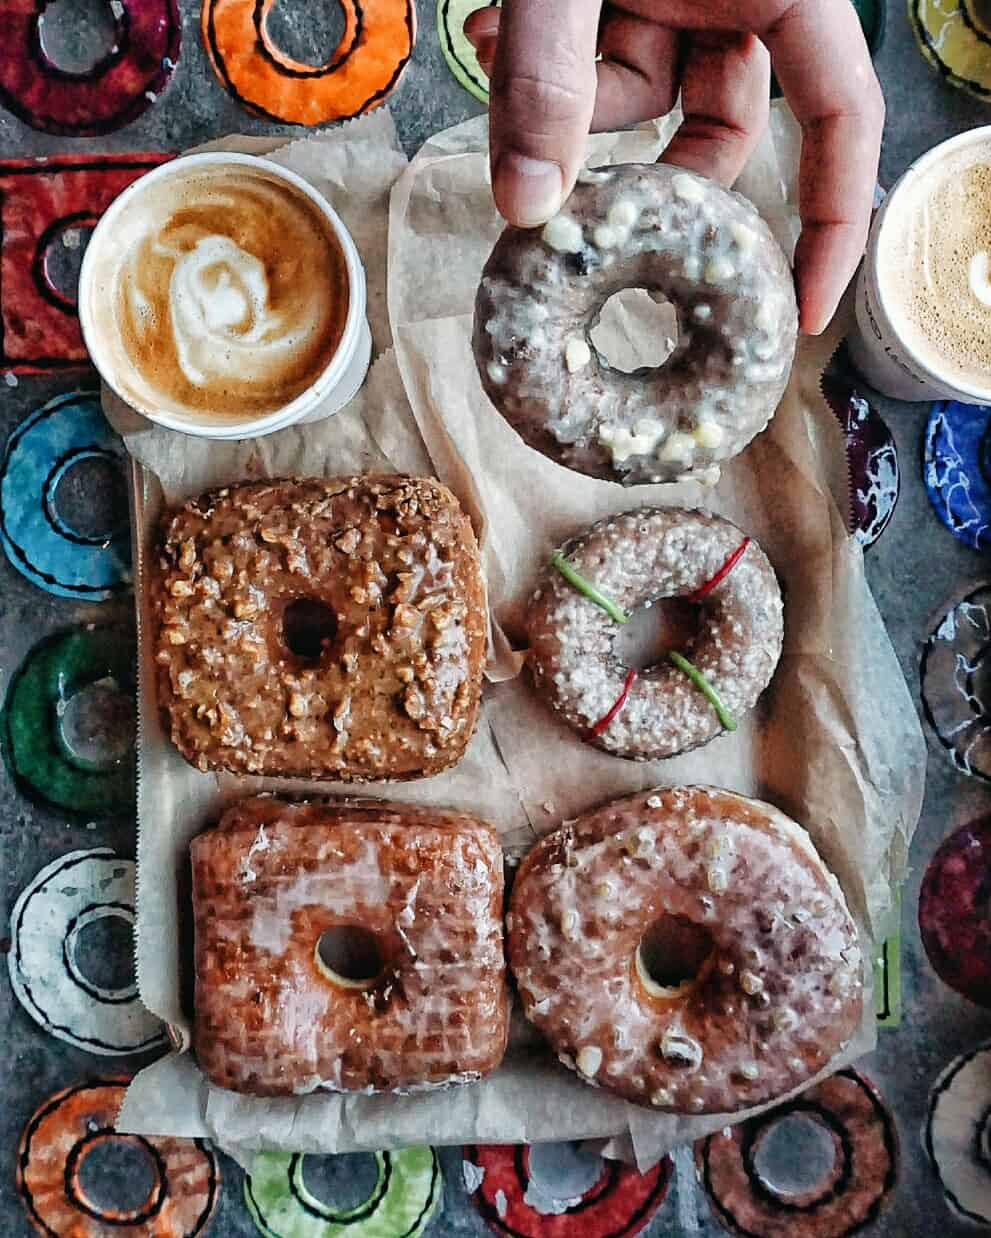 Doughnut plant 17 awesome things to do in new york in for Things to do in nyc in winter